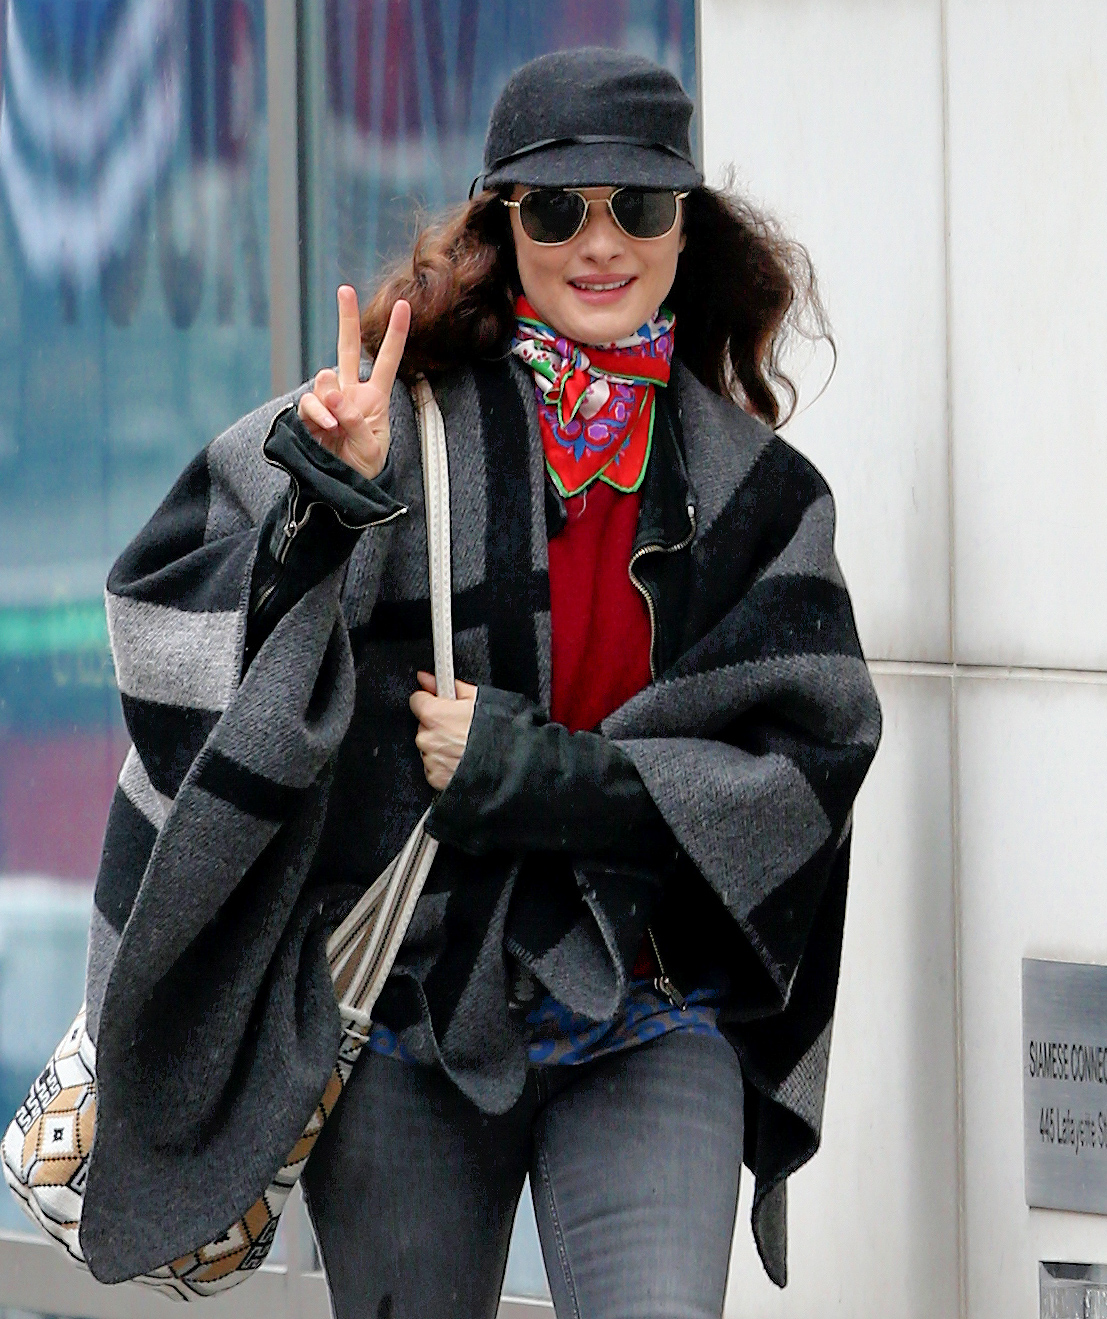 Actress Rachel Weisz, wearing a striped shawl, knee-length boots and her favorite stained jeans, flashes the peace sign as she arrives for her matinee performance of 'Plenty' at Public Theater in New York City